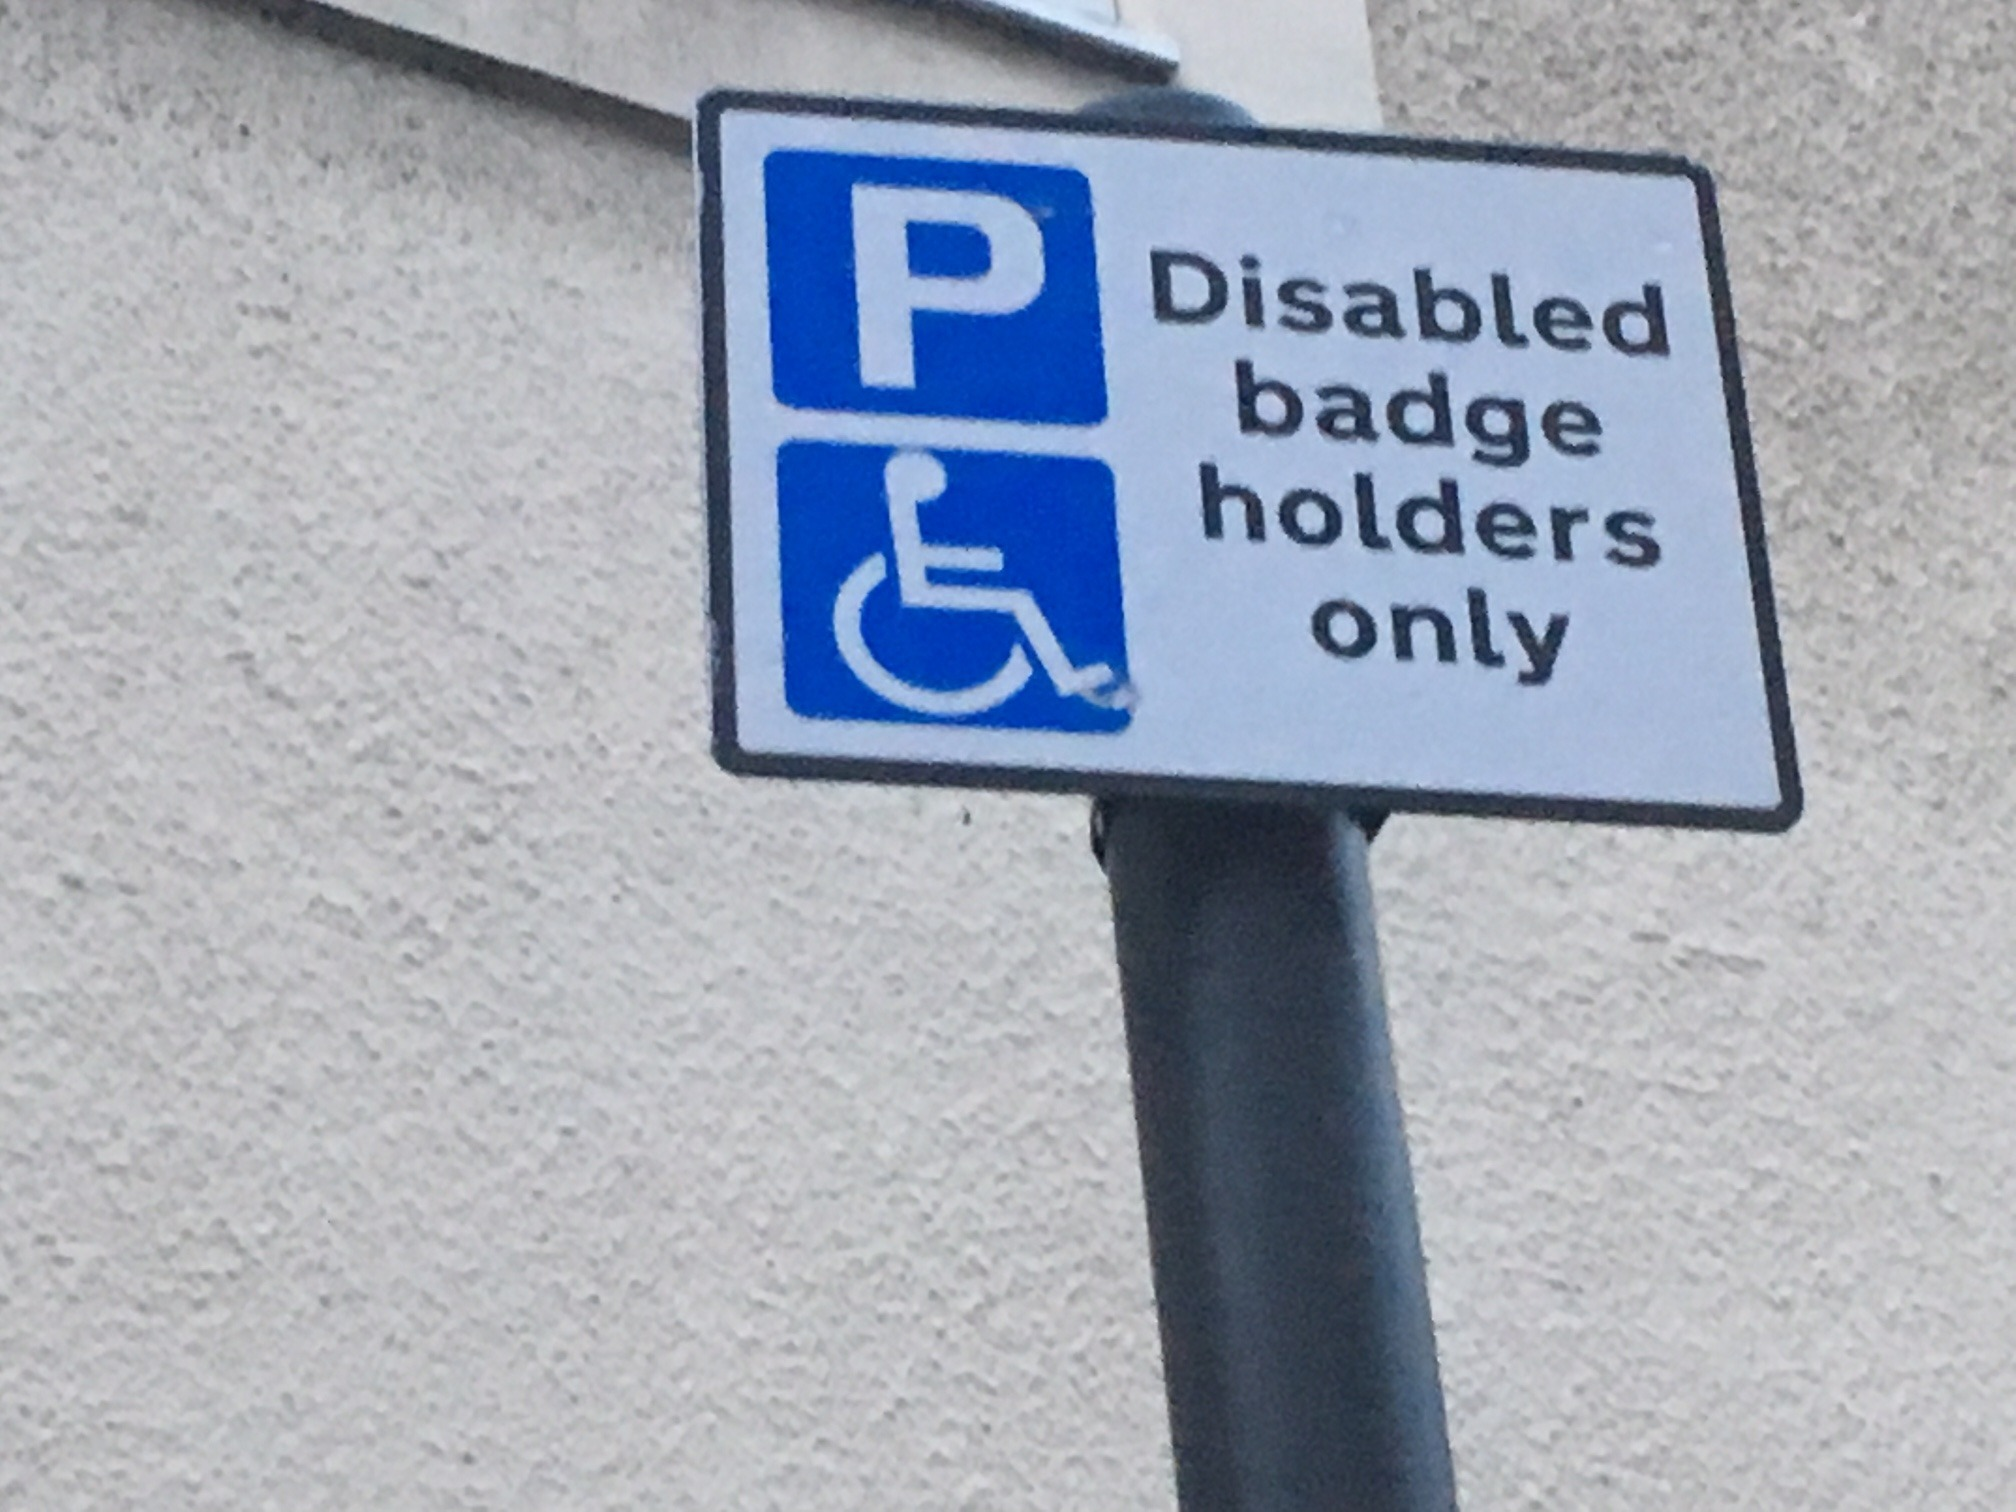 Blue badge parking in Hammersmith, pic by LDR Julia Gregory.  Free for use for partners of BBC news wire service